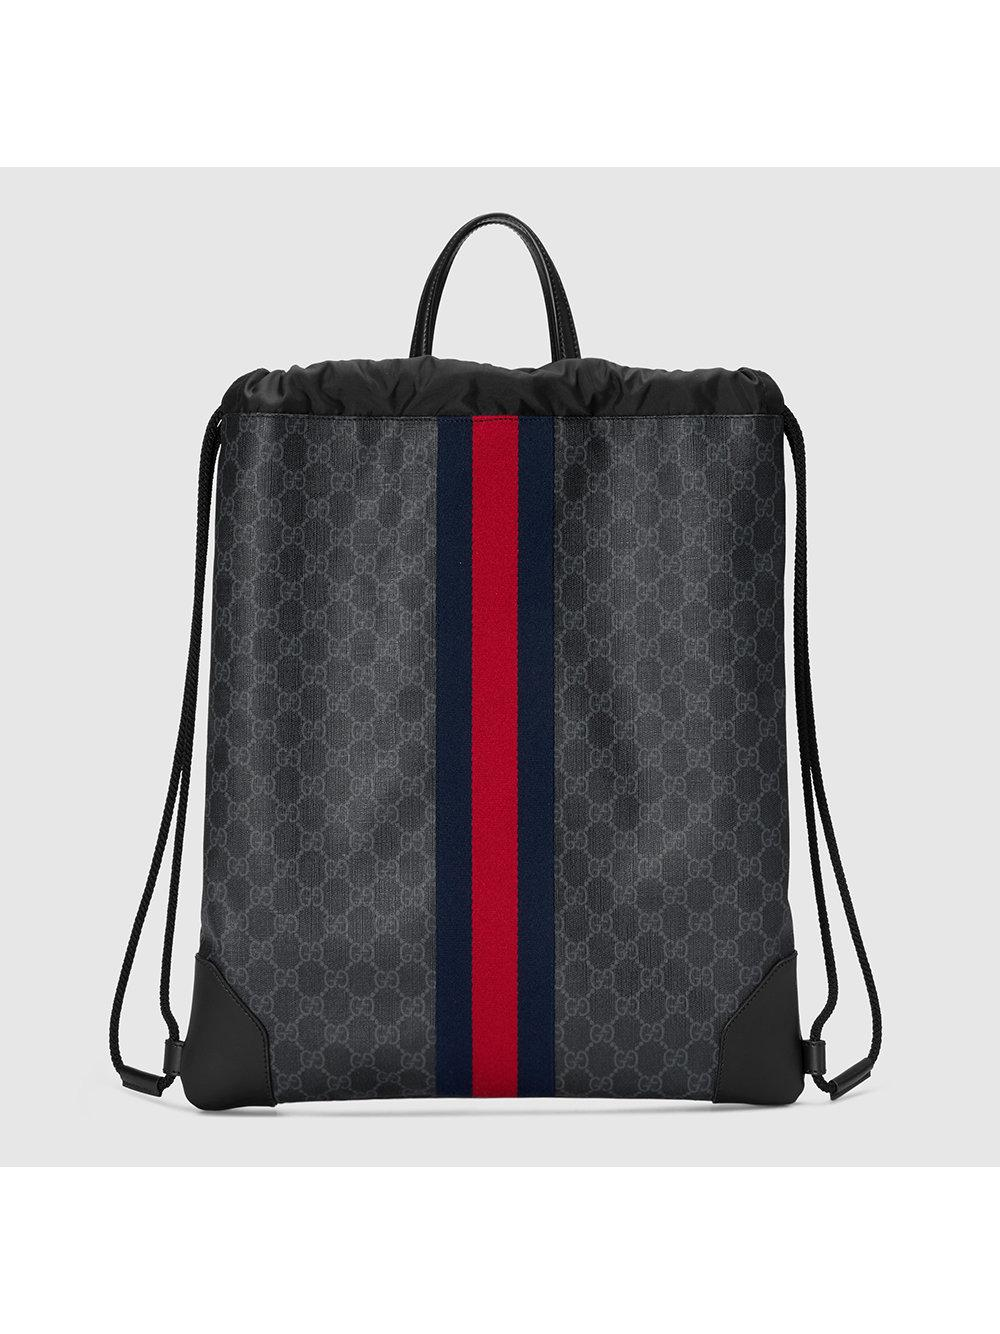 b3b1b5d985f Gucci Soft Gg Supreme Drawstring Backpack In Black